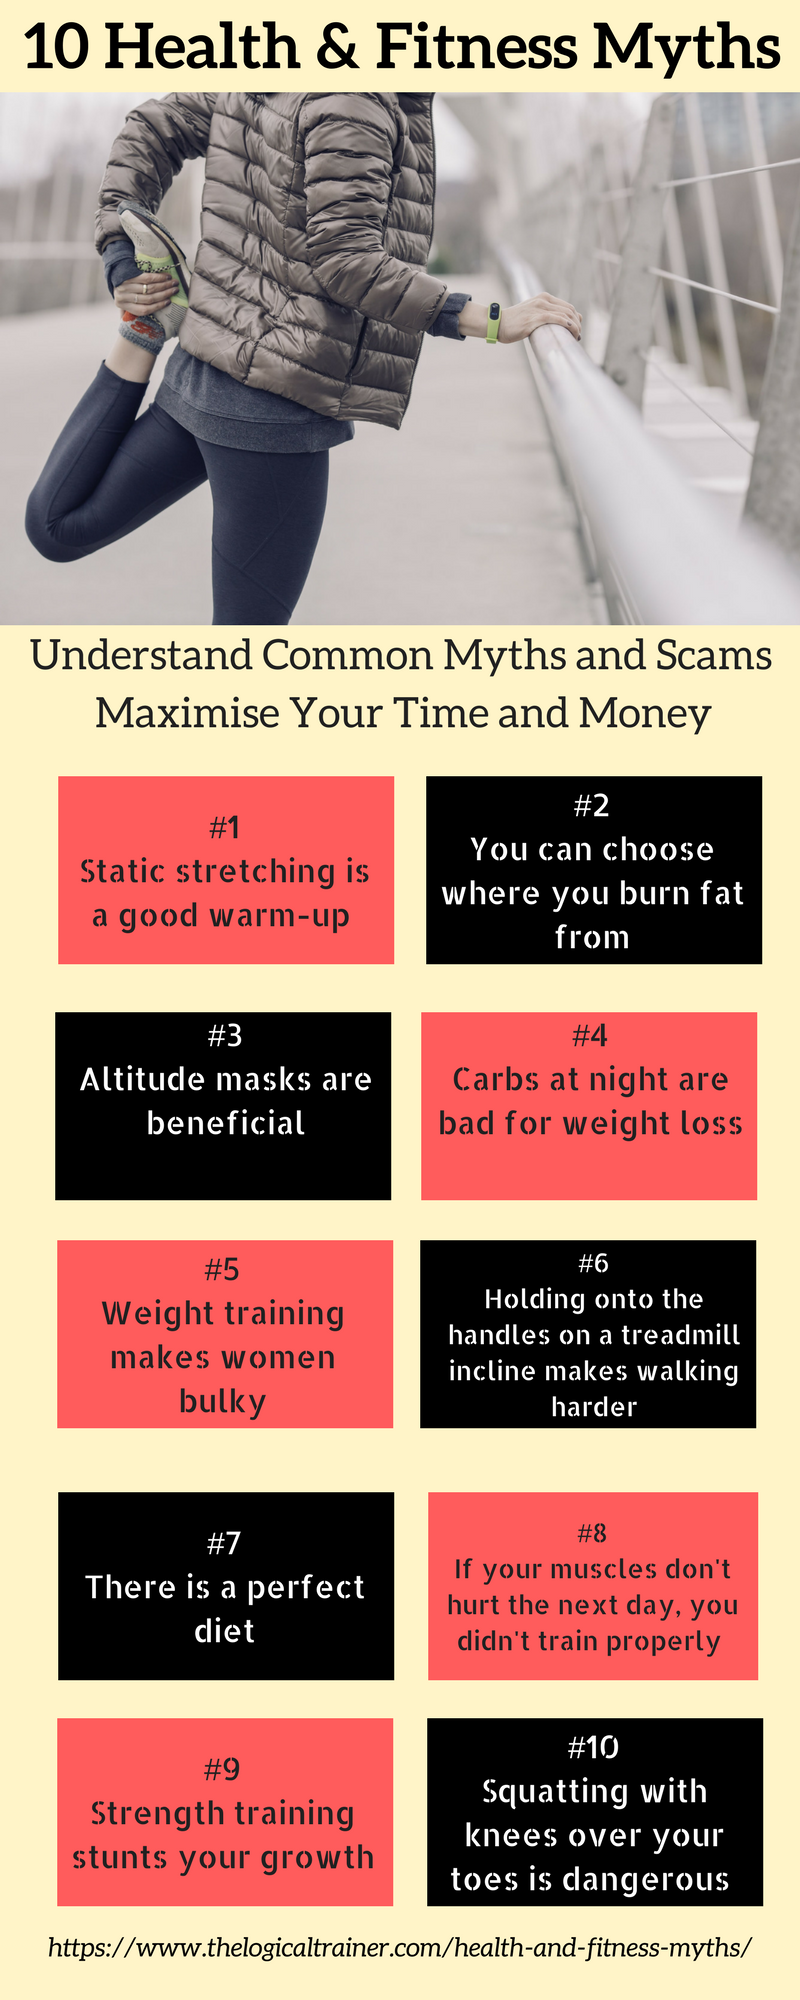 6 Health and Fitness Myths You Should Never Believe in